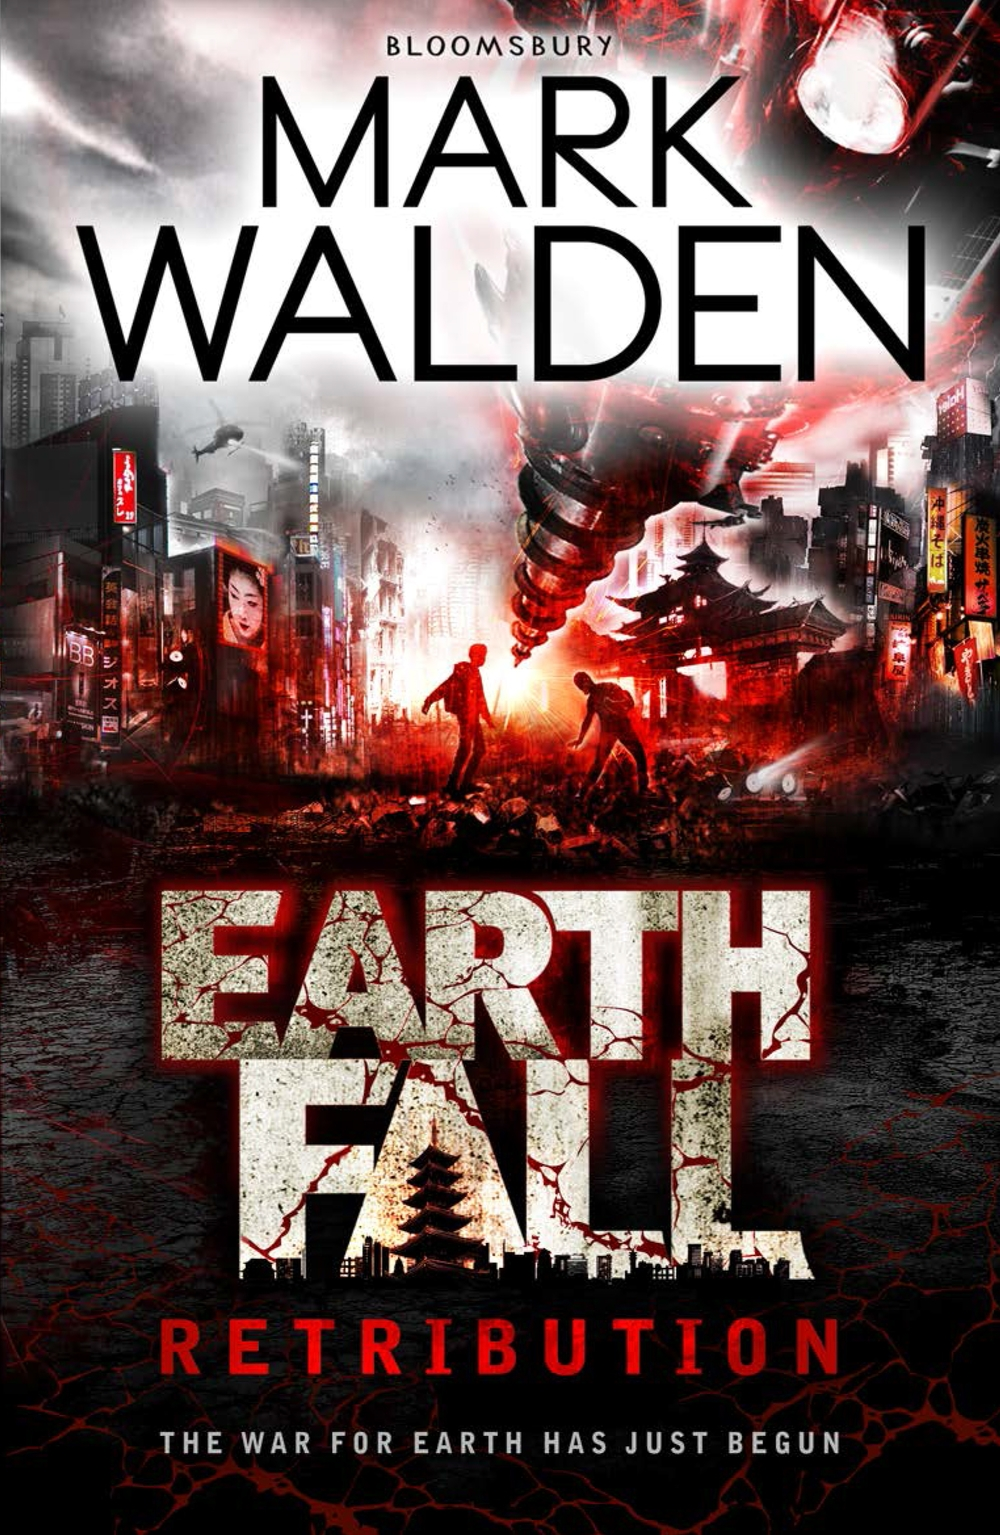 drone new with Earthfall Retribution By Mark Walden on 7358329920 together with 7014613909 also Croatian Stereographic Projections additionally Cinefly drone uav aerial geelong waterfront likewise Drones Multirotors c 116.